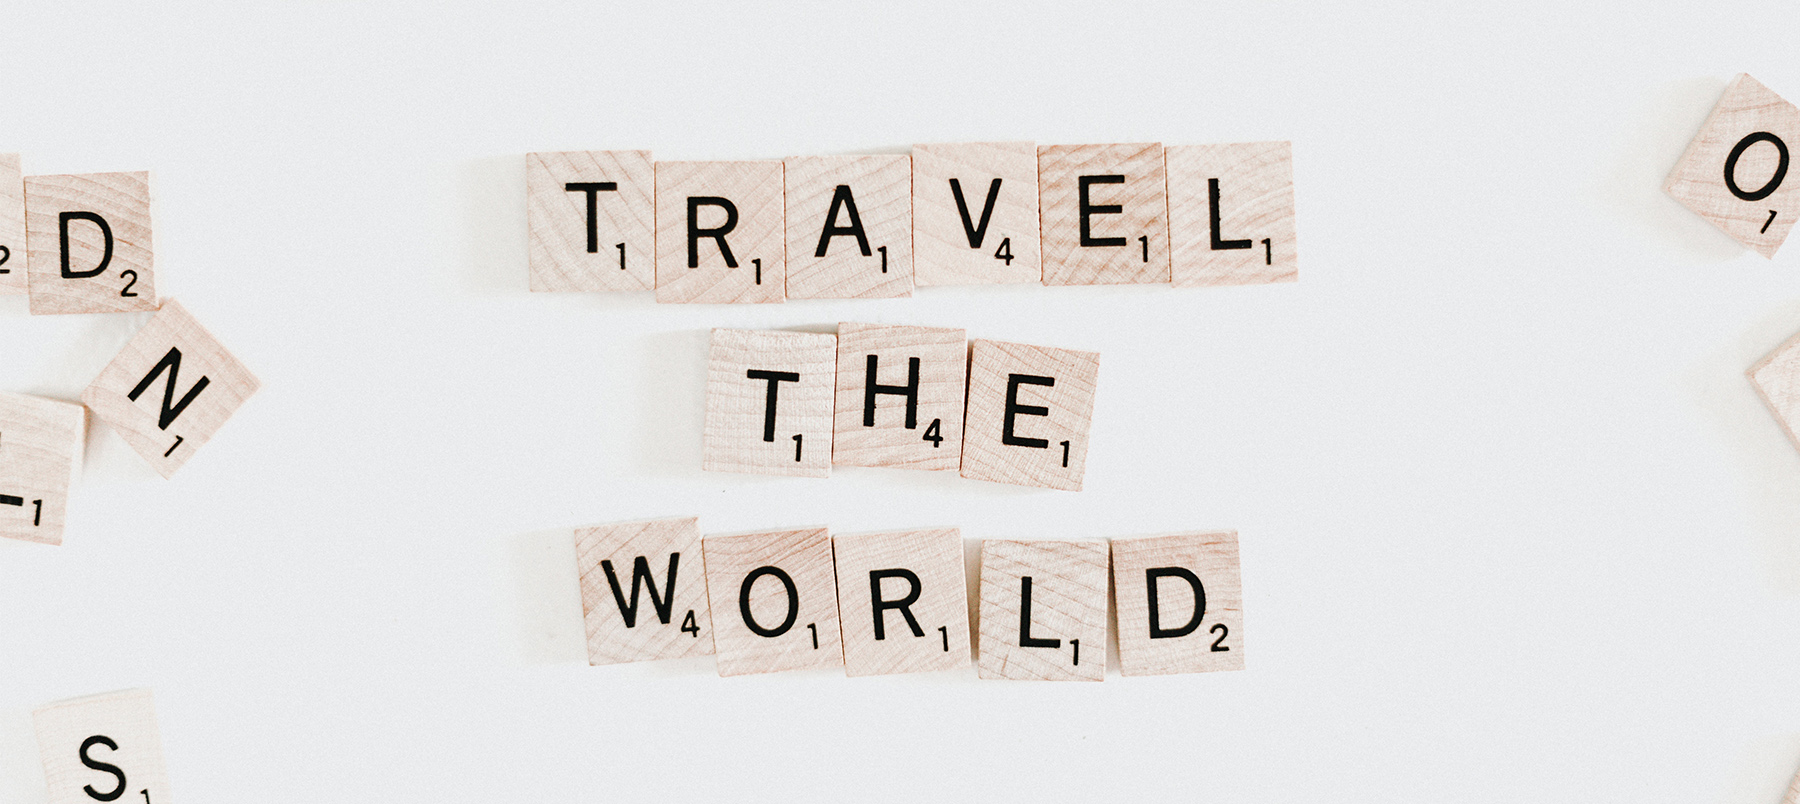 Scrabble letters 'Travel the world'